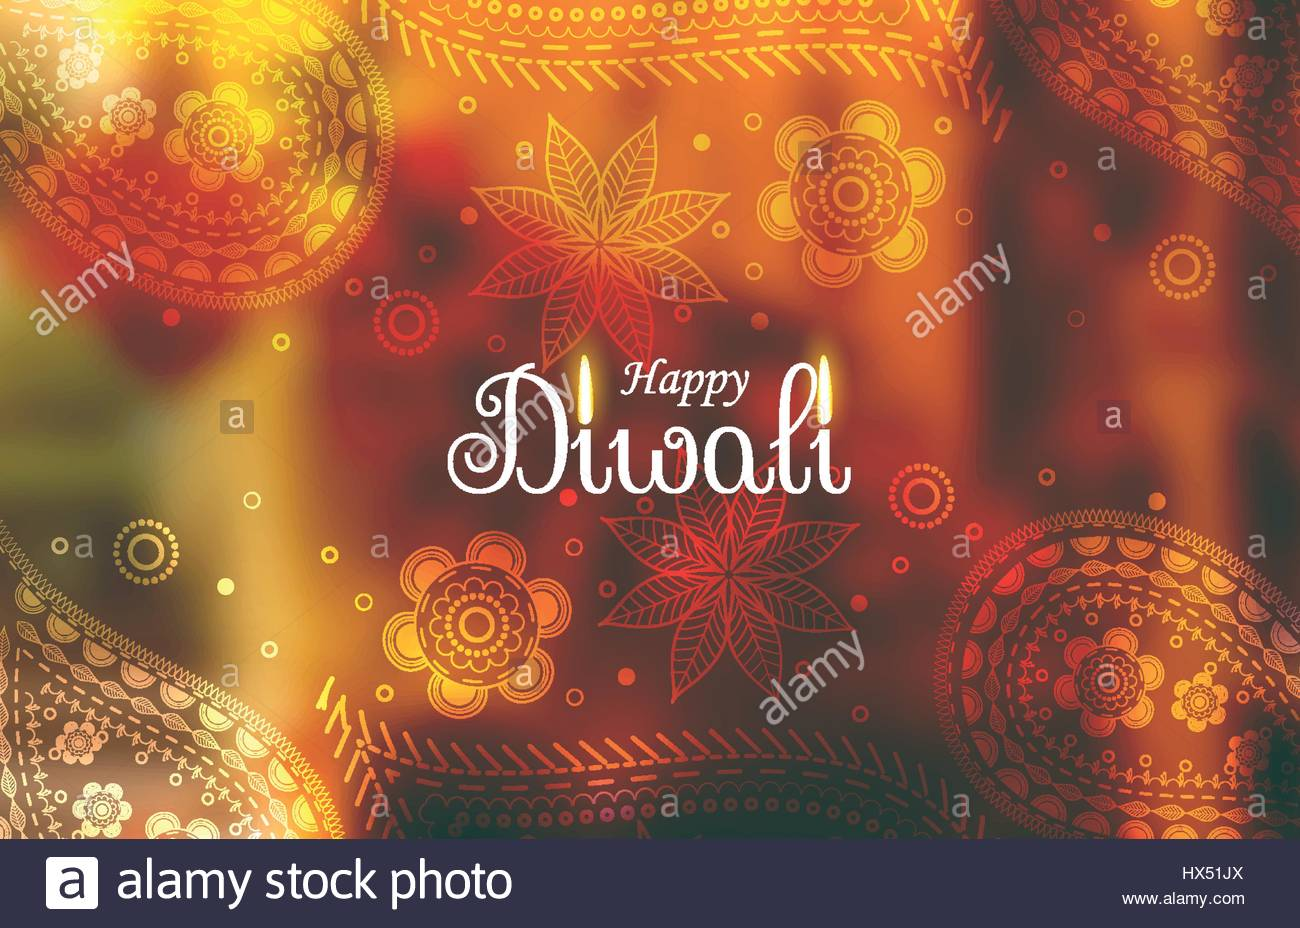 awesome diwali wallpaper background with paisley pattern Stock Vector